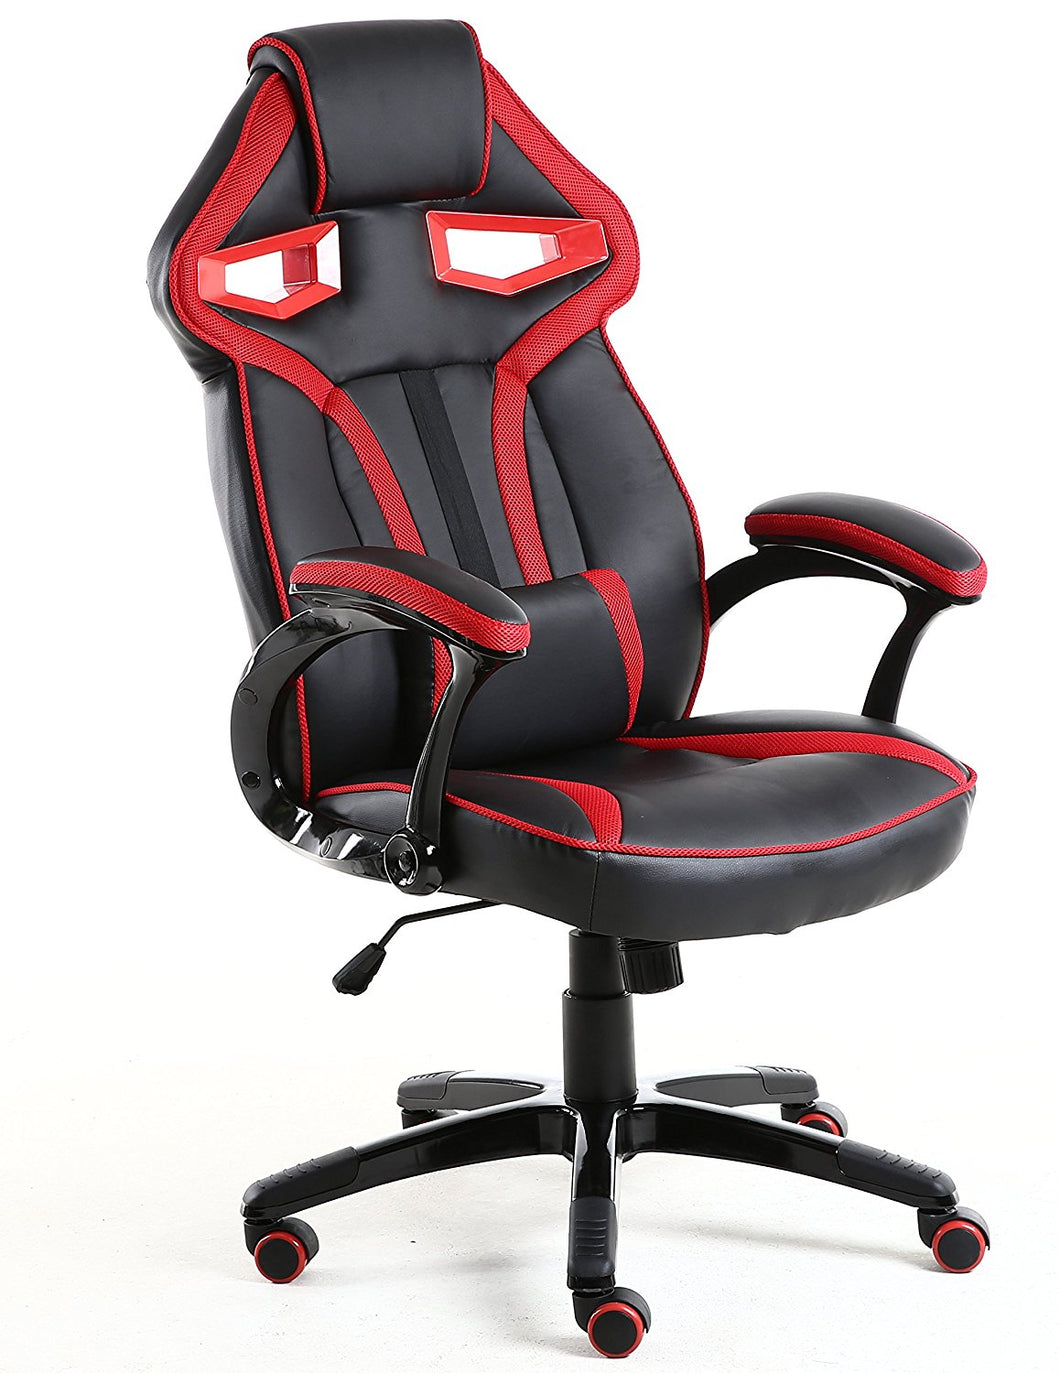 Executive Leather High back Office Swivel Gaming Chair